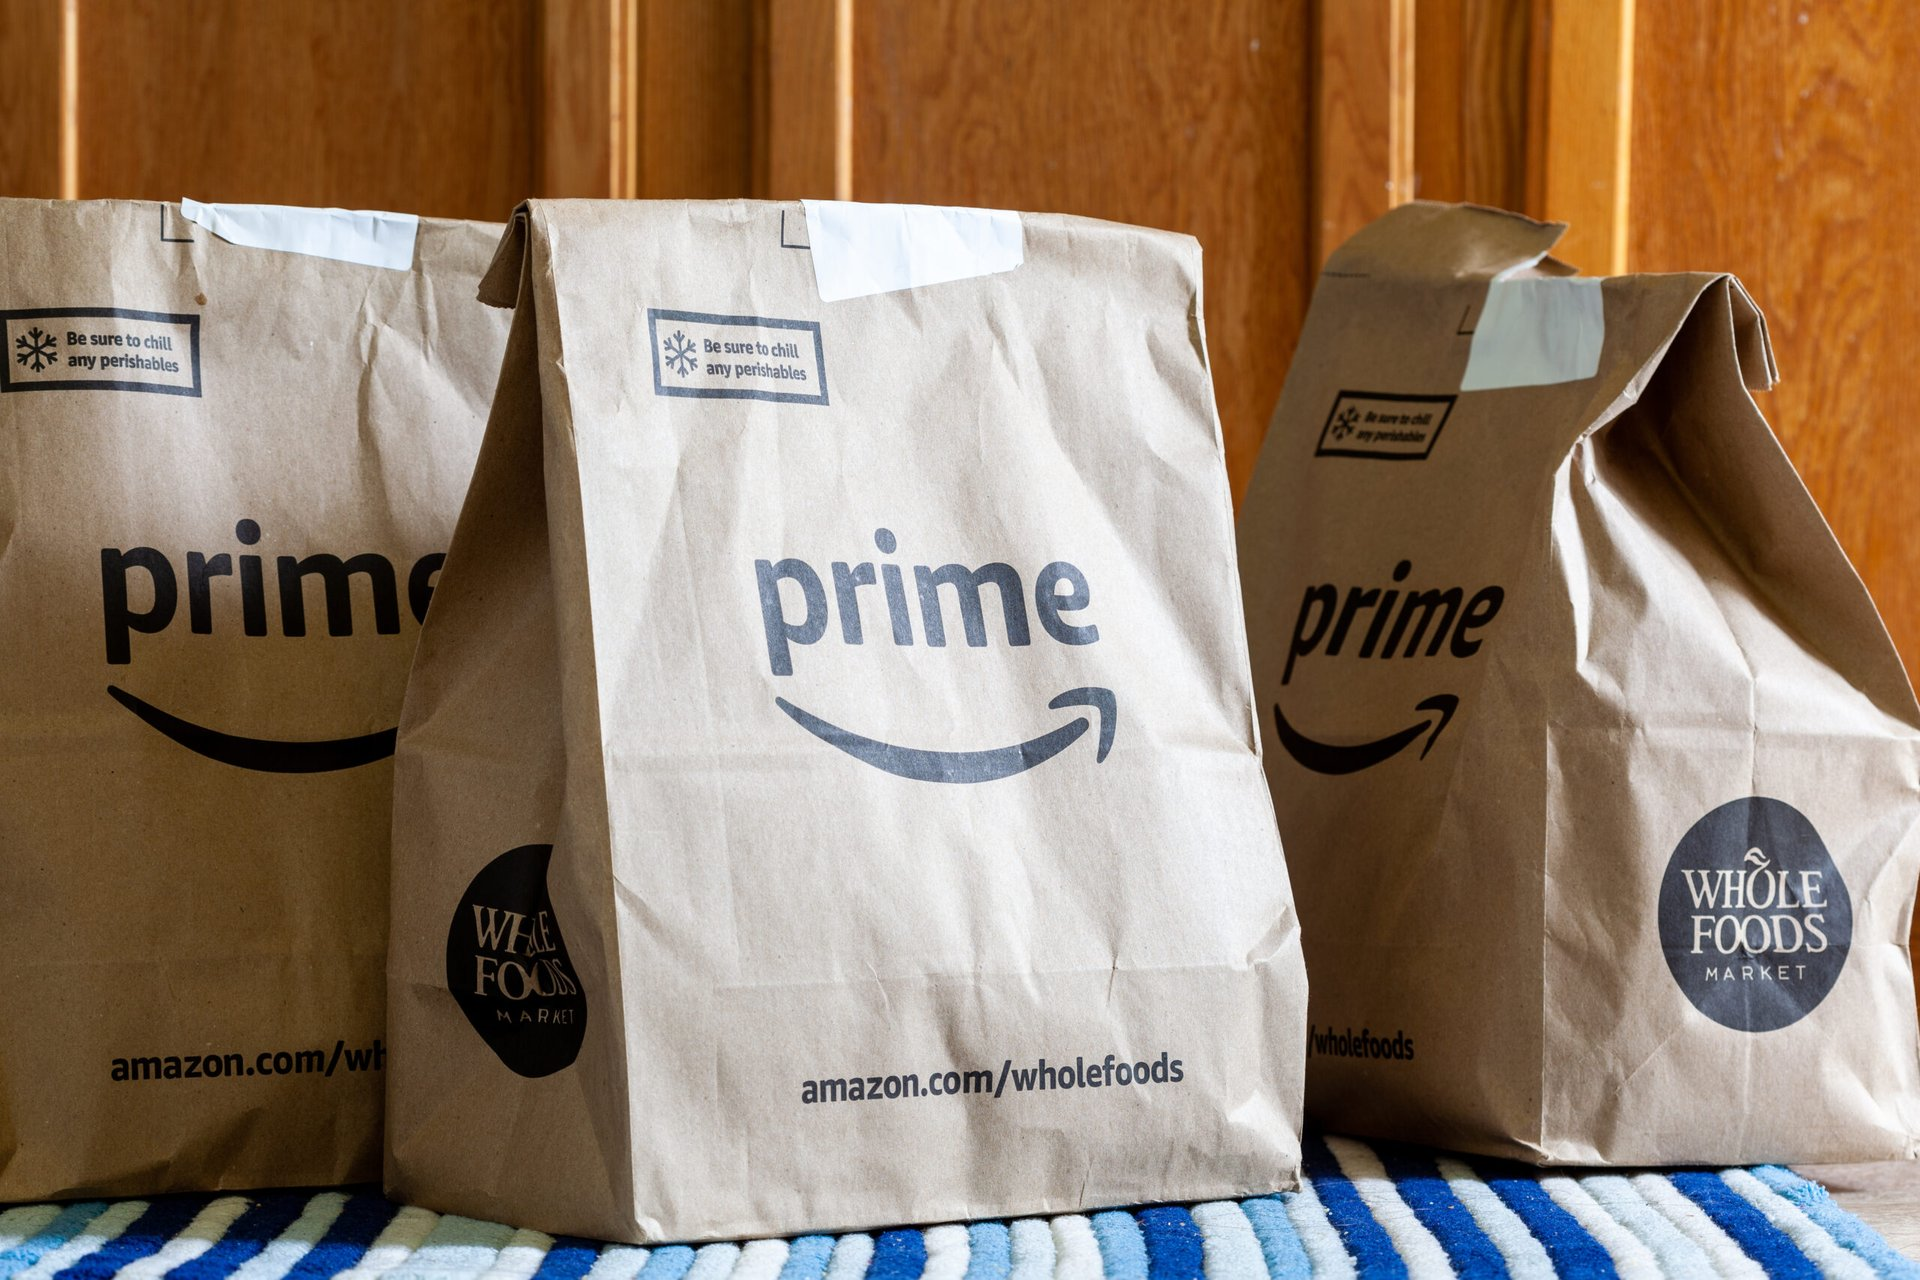 Bags of Whole Foods Market groceries delivered to an Amazon Prime member's home